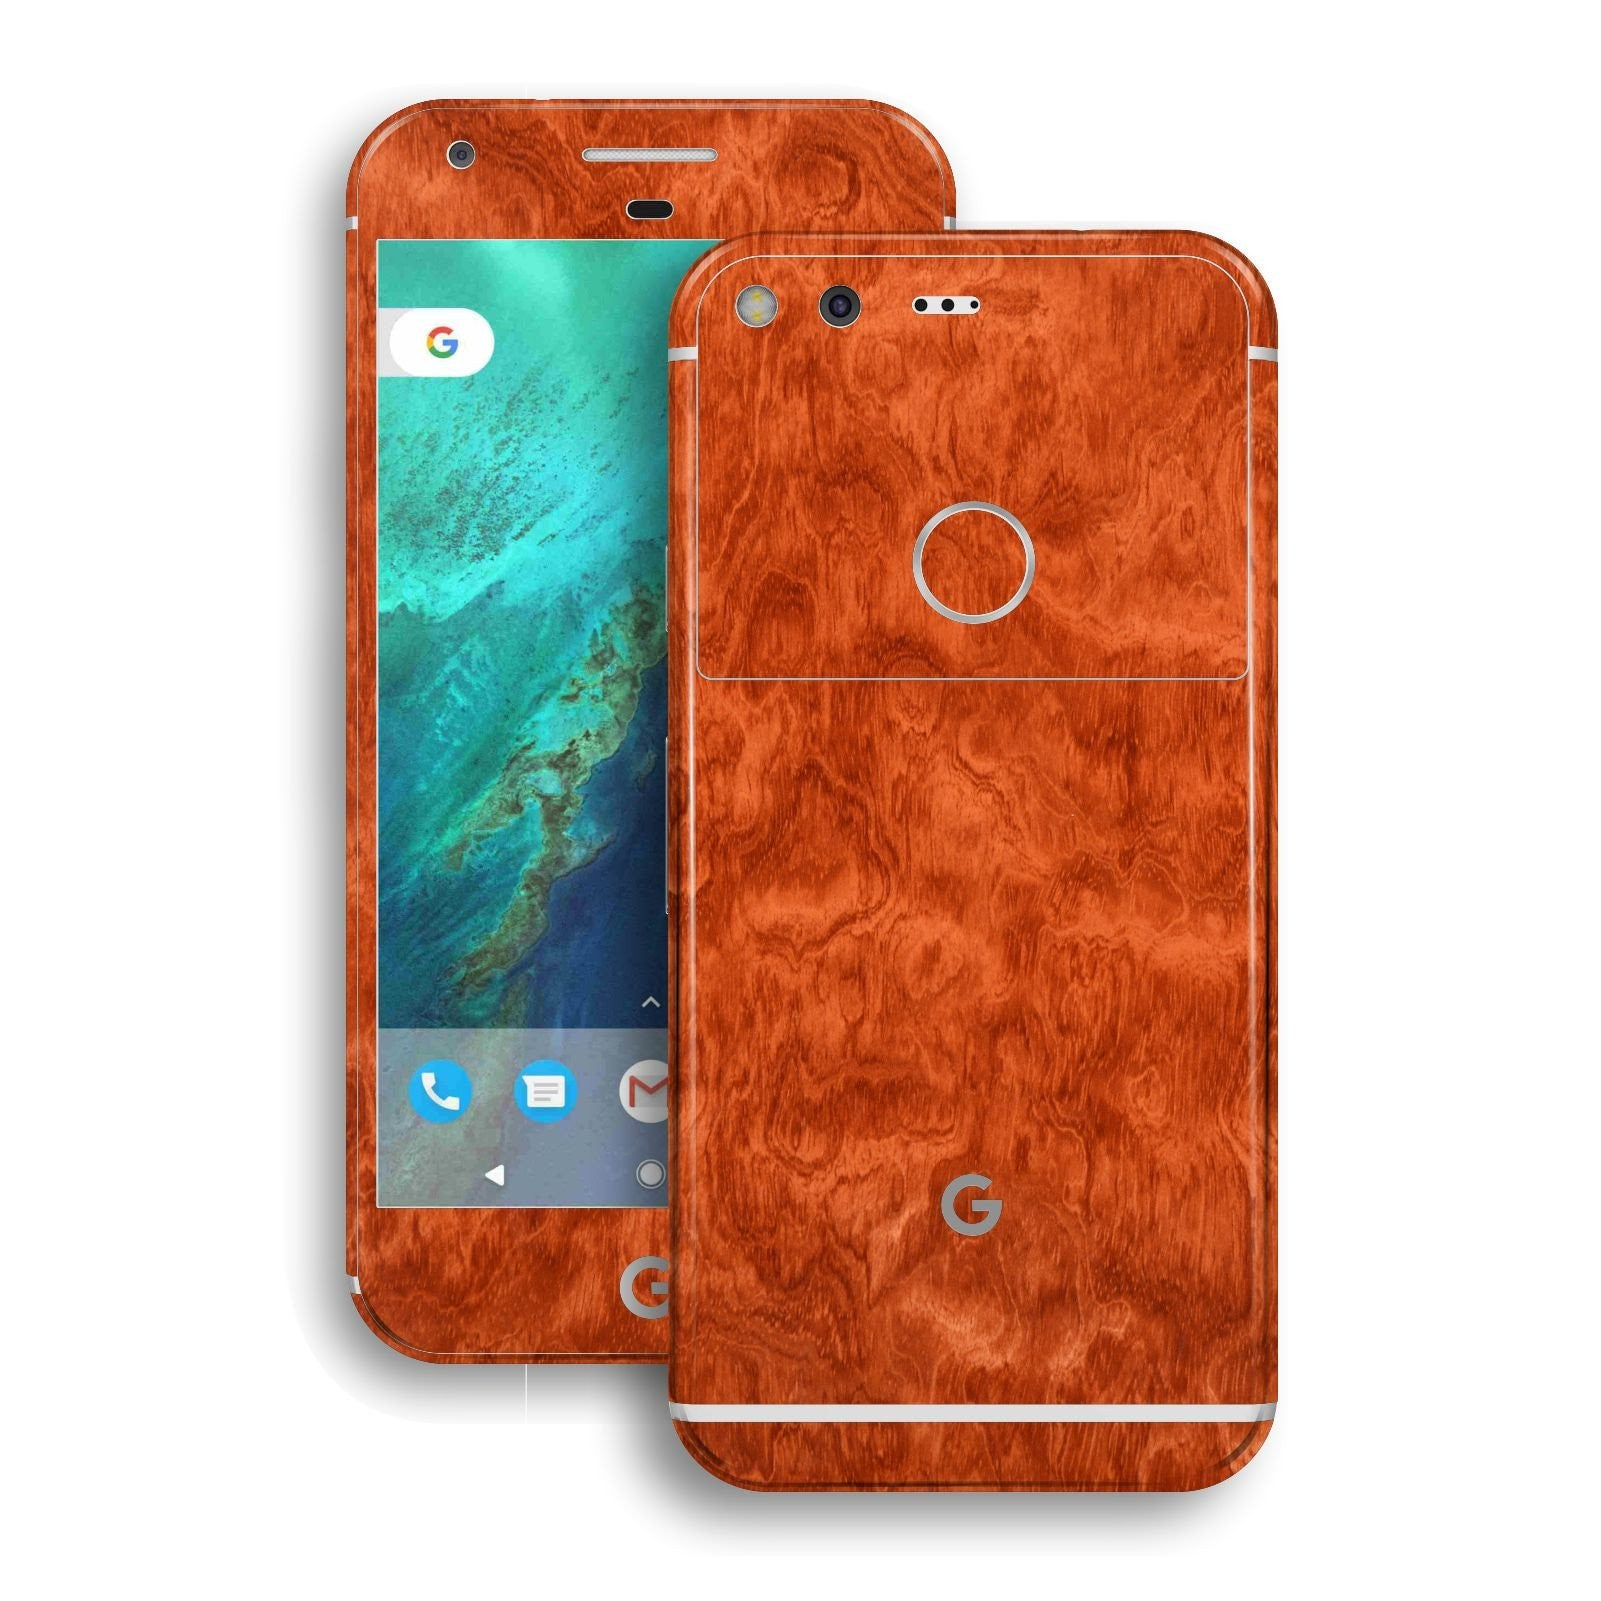 Google Pixel LUXURIA Mahogany Wood Effect Glossy Skin by EasySkinz